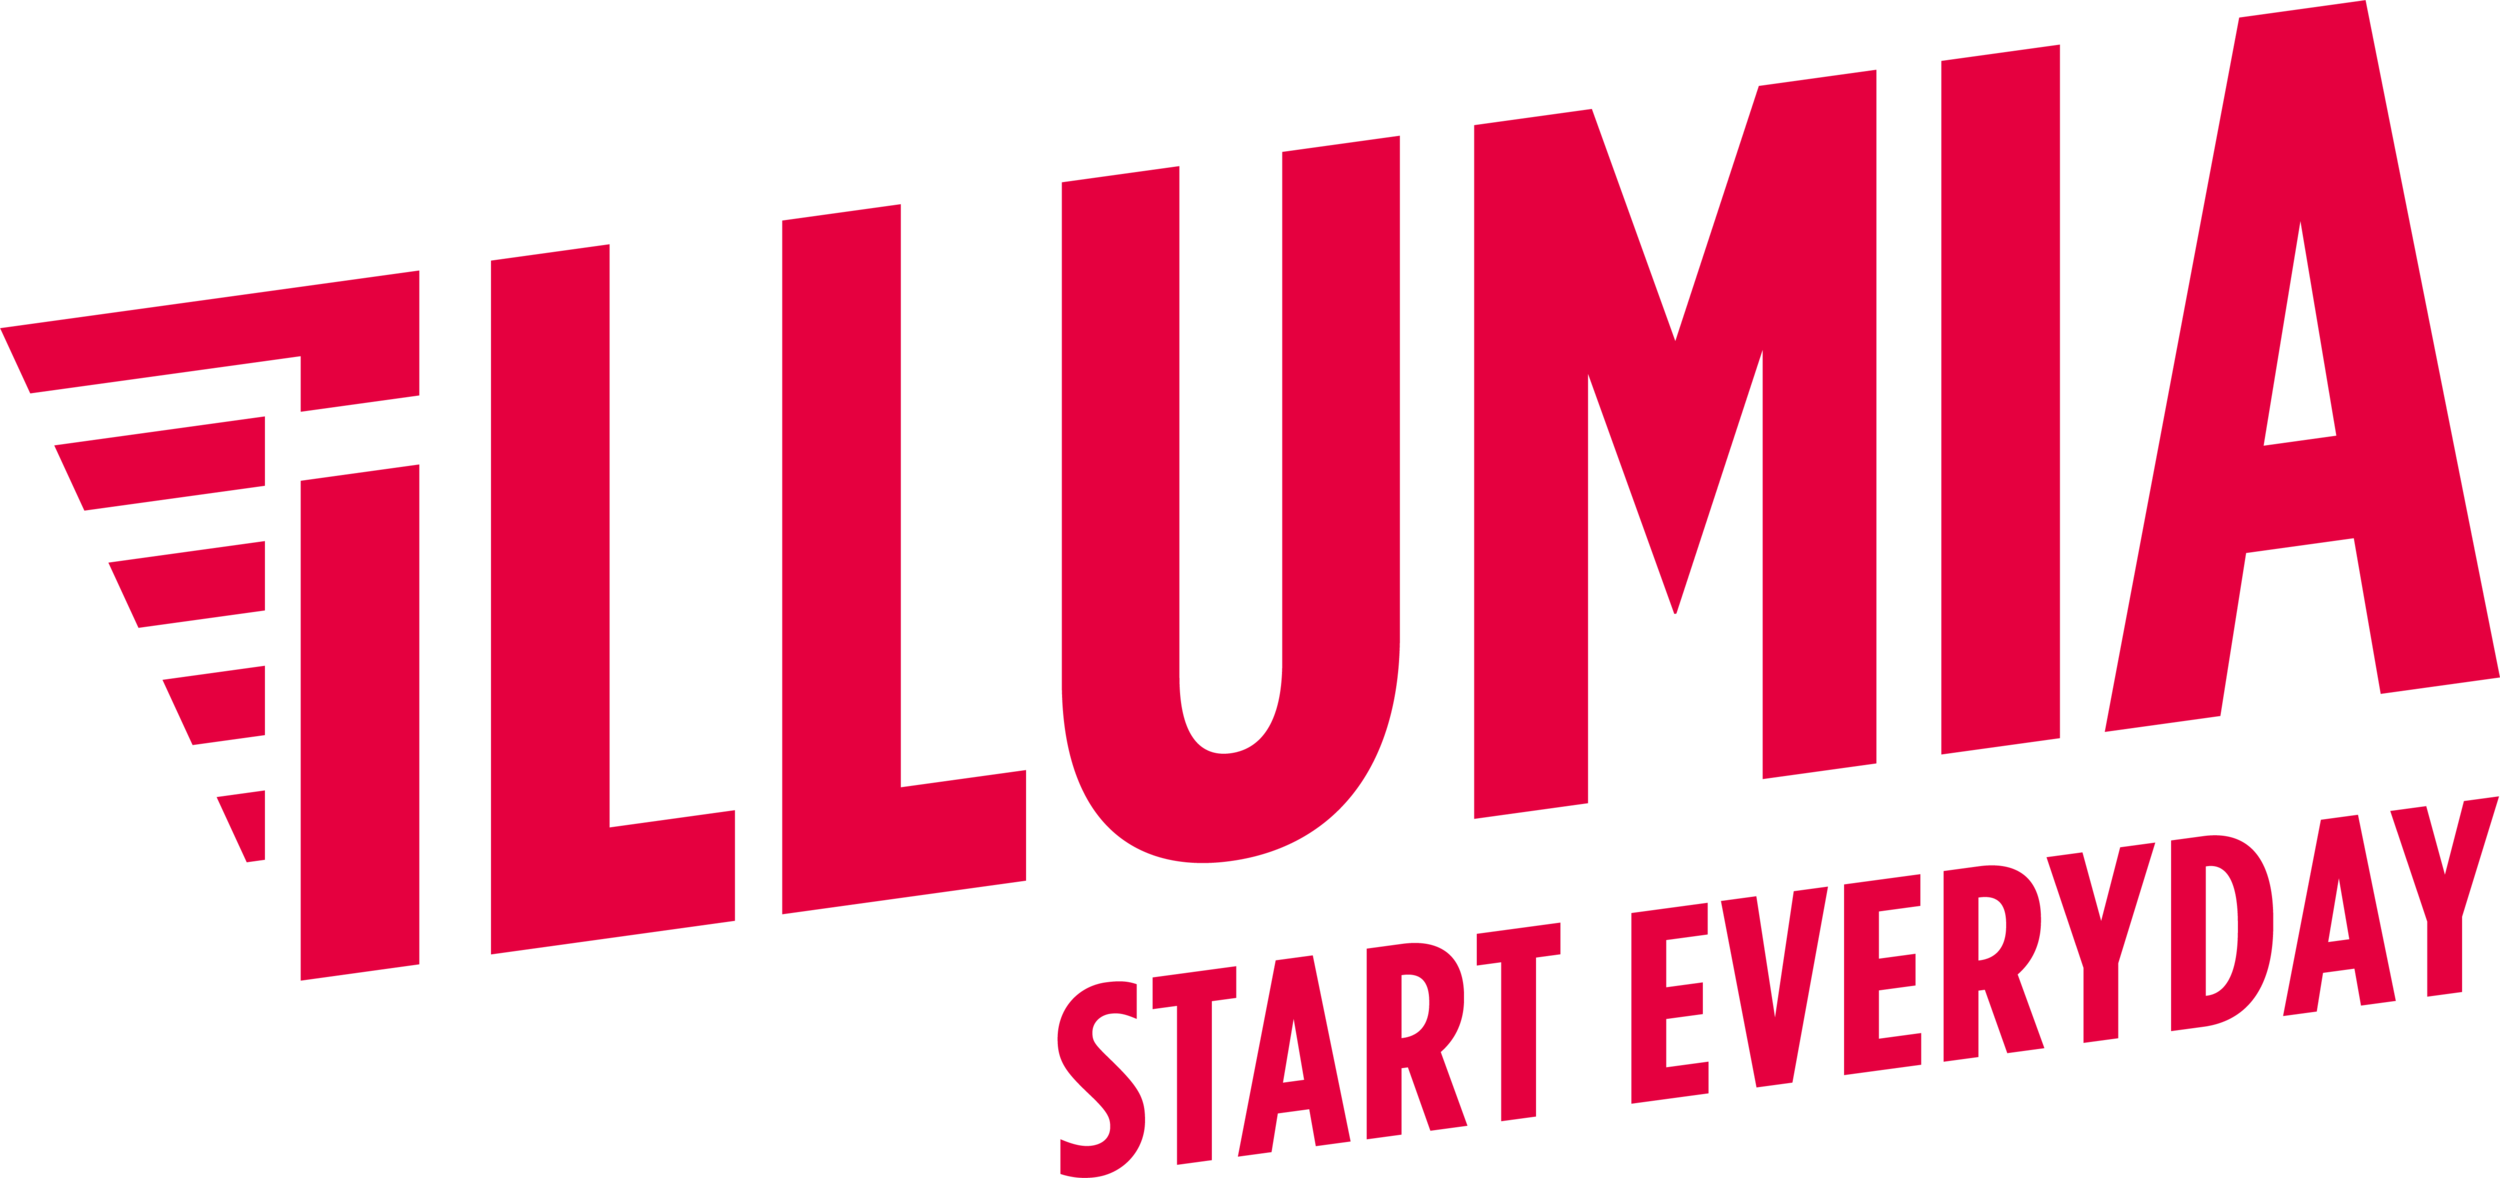 Illumia logo_RED_2017.png